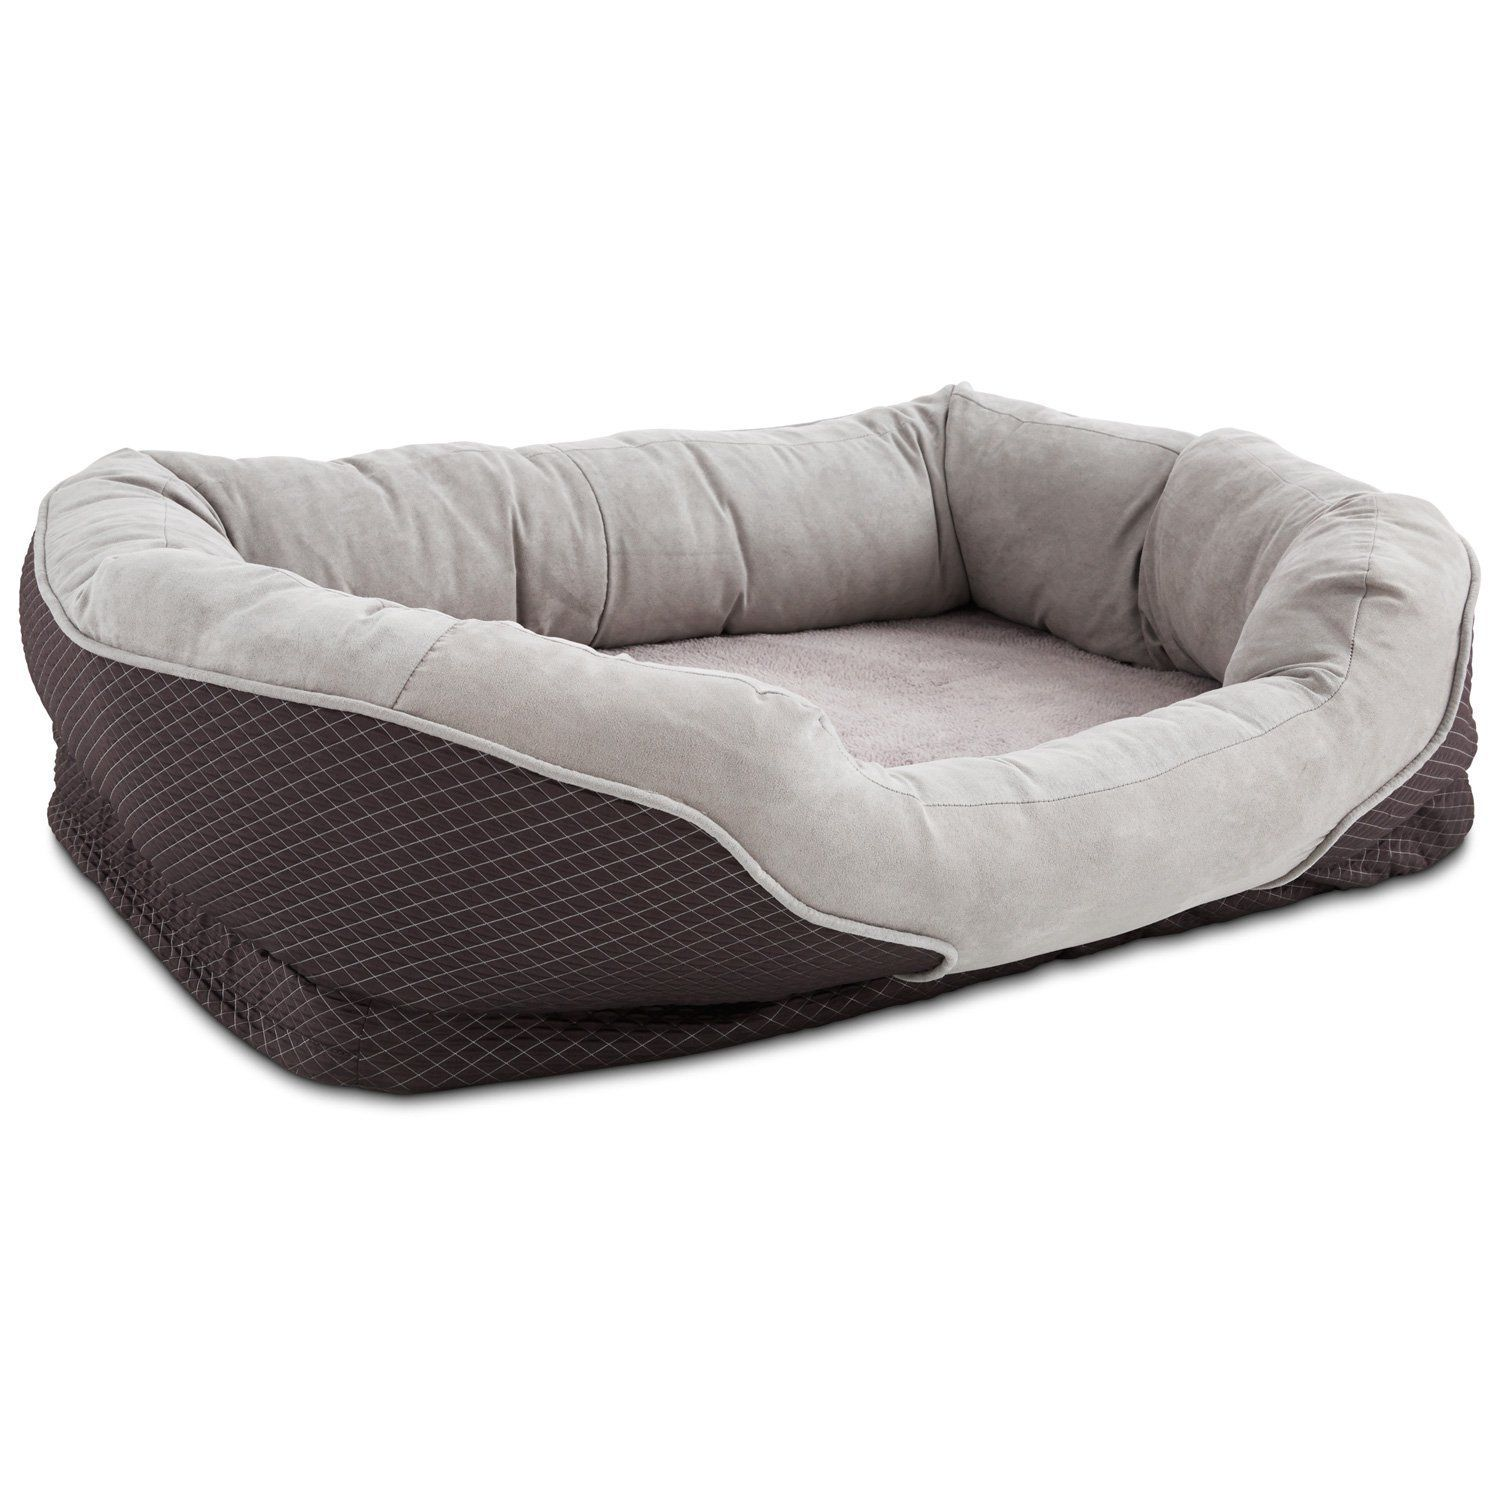 Amazon Petco Orthopedic Peaceful Nester Gray Dog Bed 40